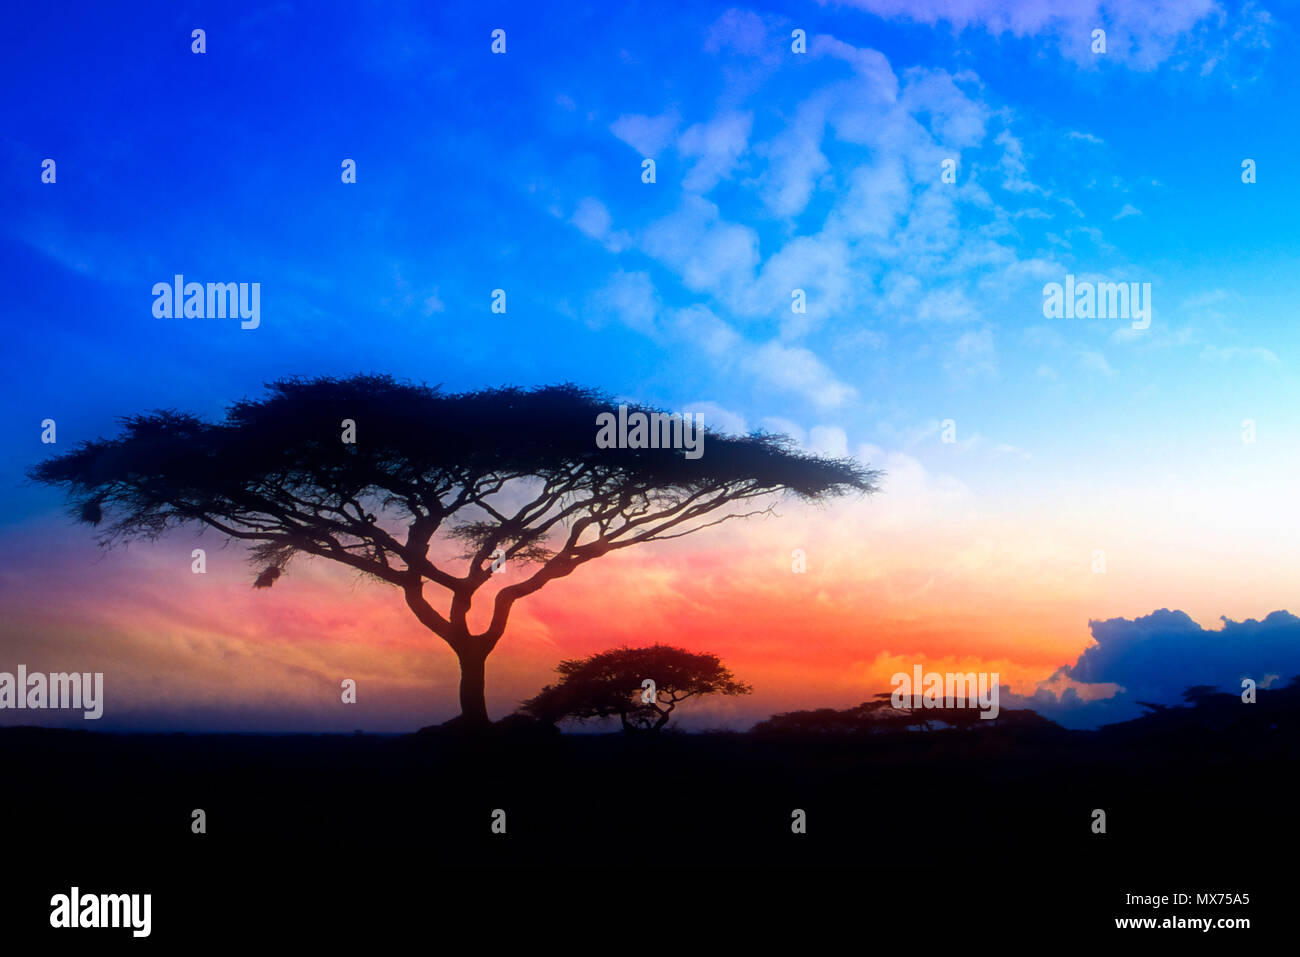 The sun sets on the Serengeti plains in Tanzania, Africa. - Stock Image